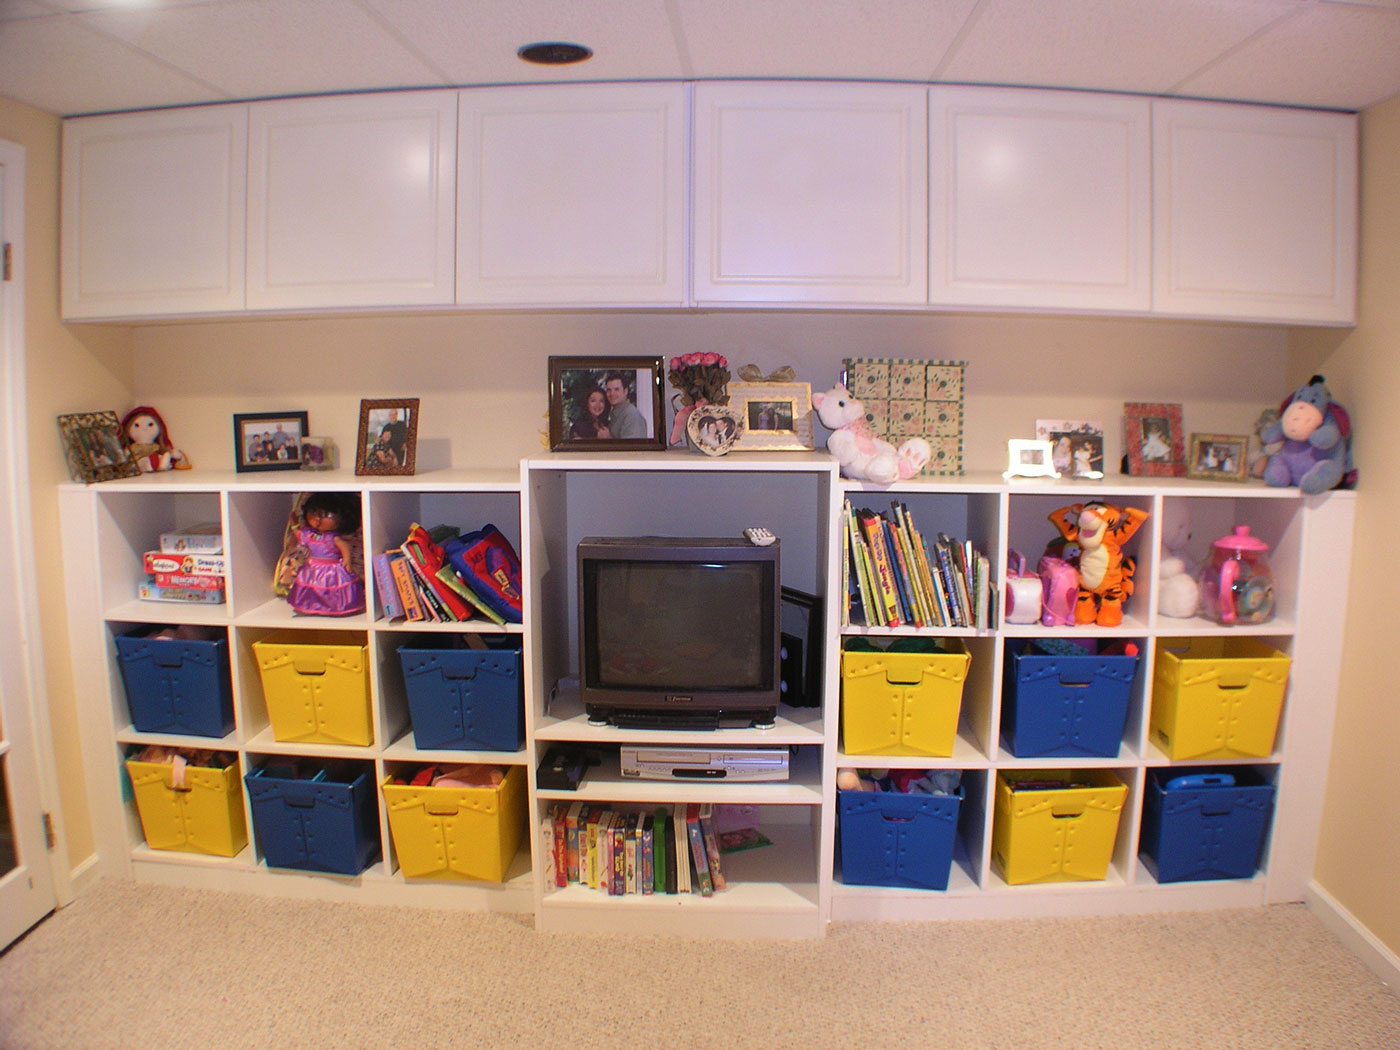 Built-in Shelves And Cabinets - Craftworks Custom Cabinetry